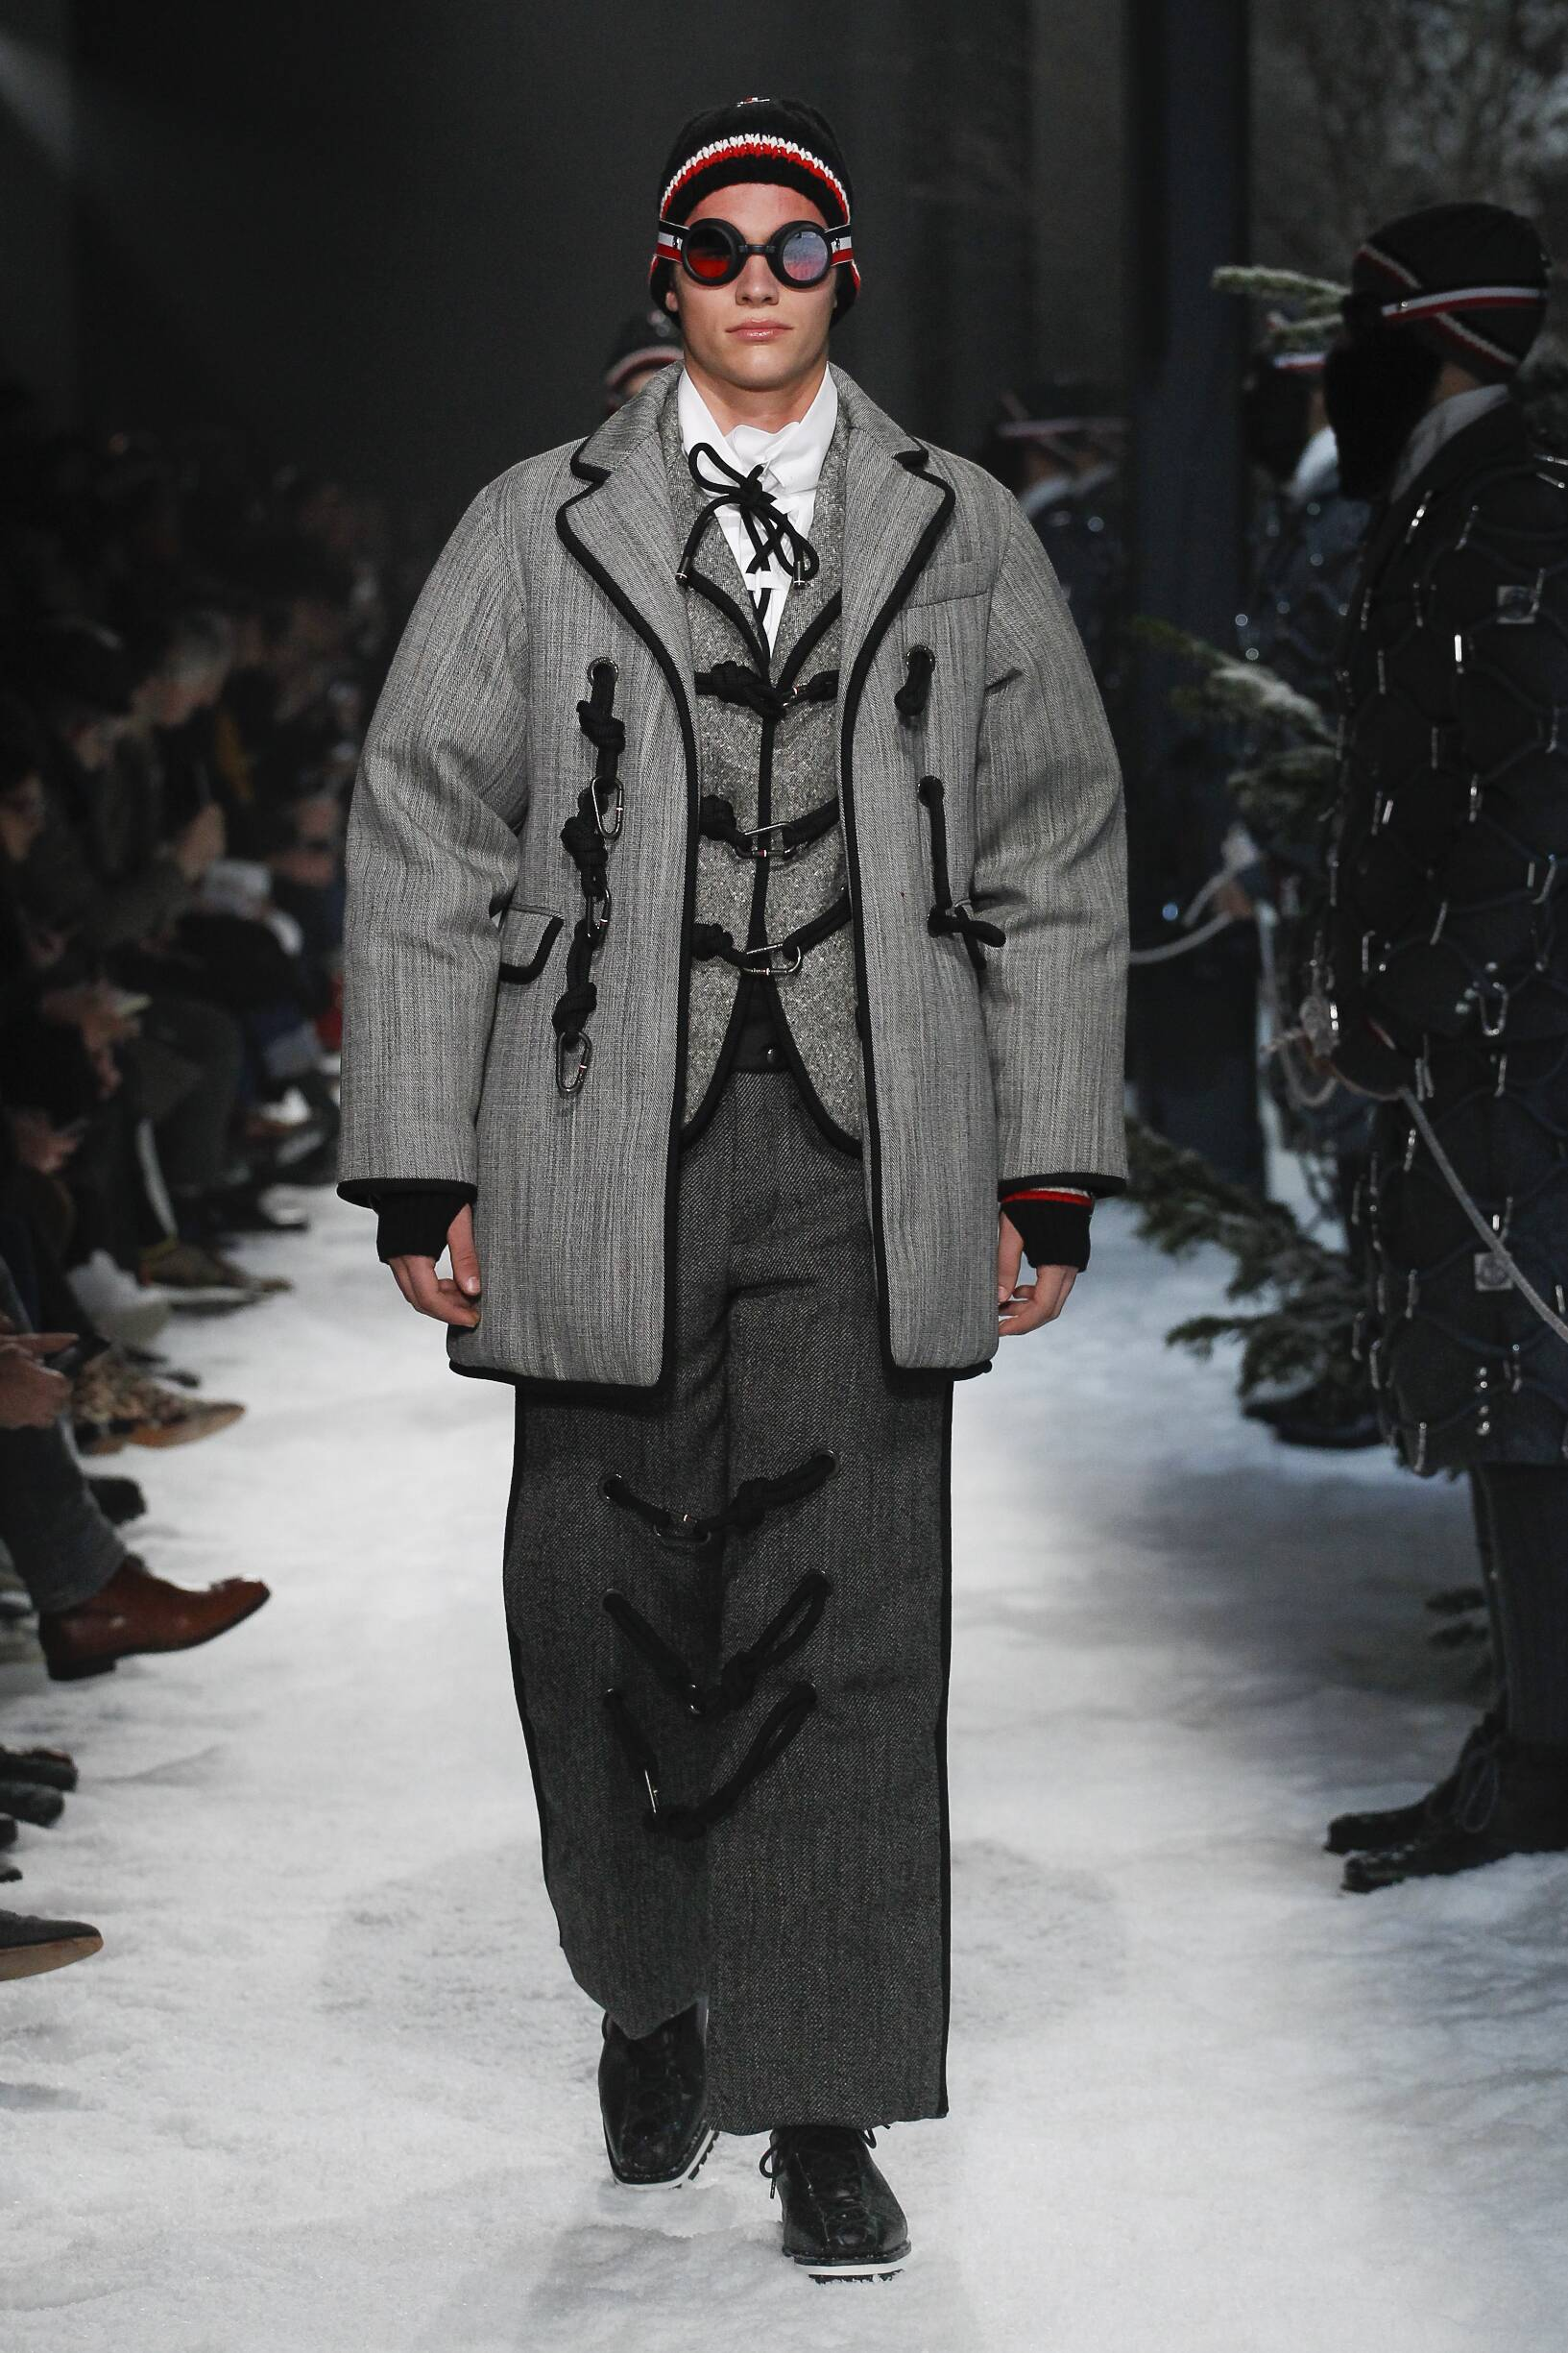 Catwalk Moncler Gamme Bleu Man Fashion Show Winter 2017